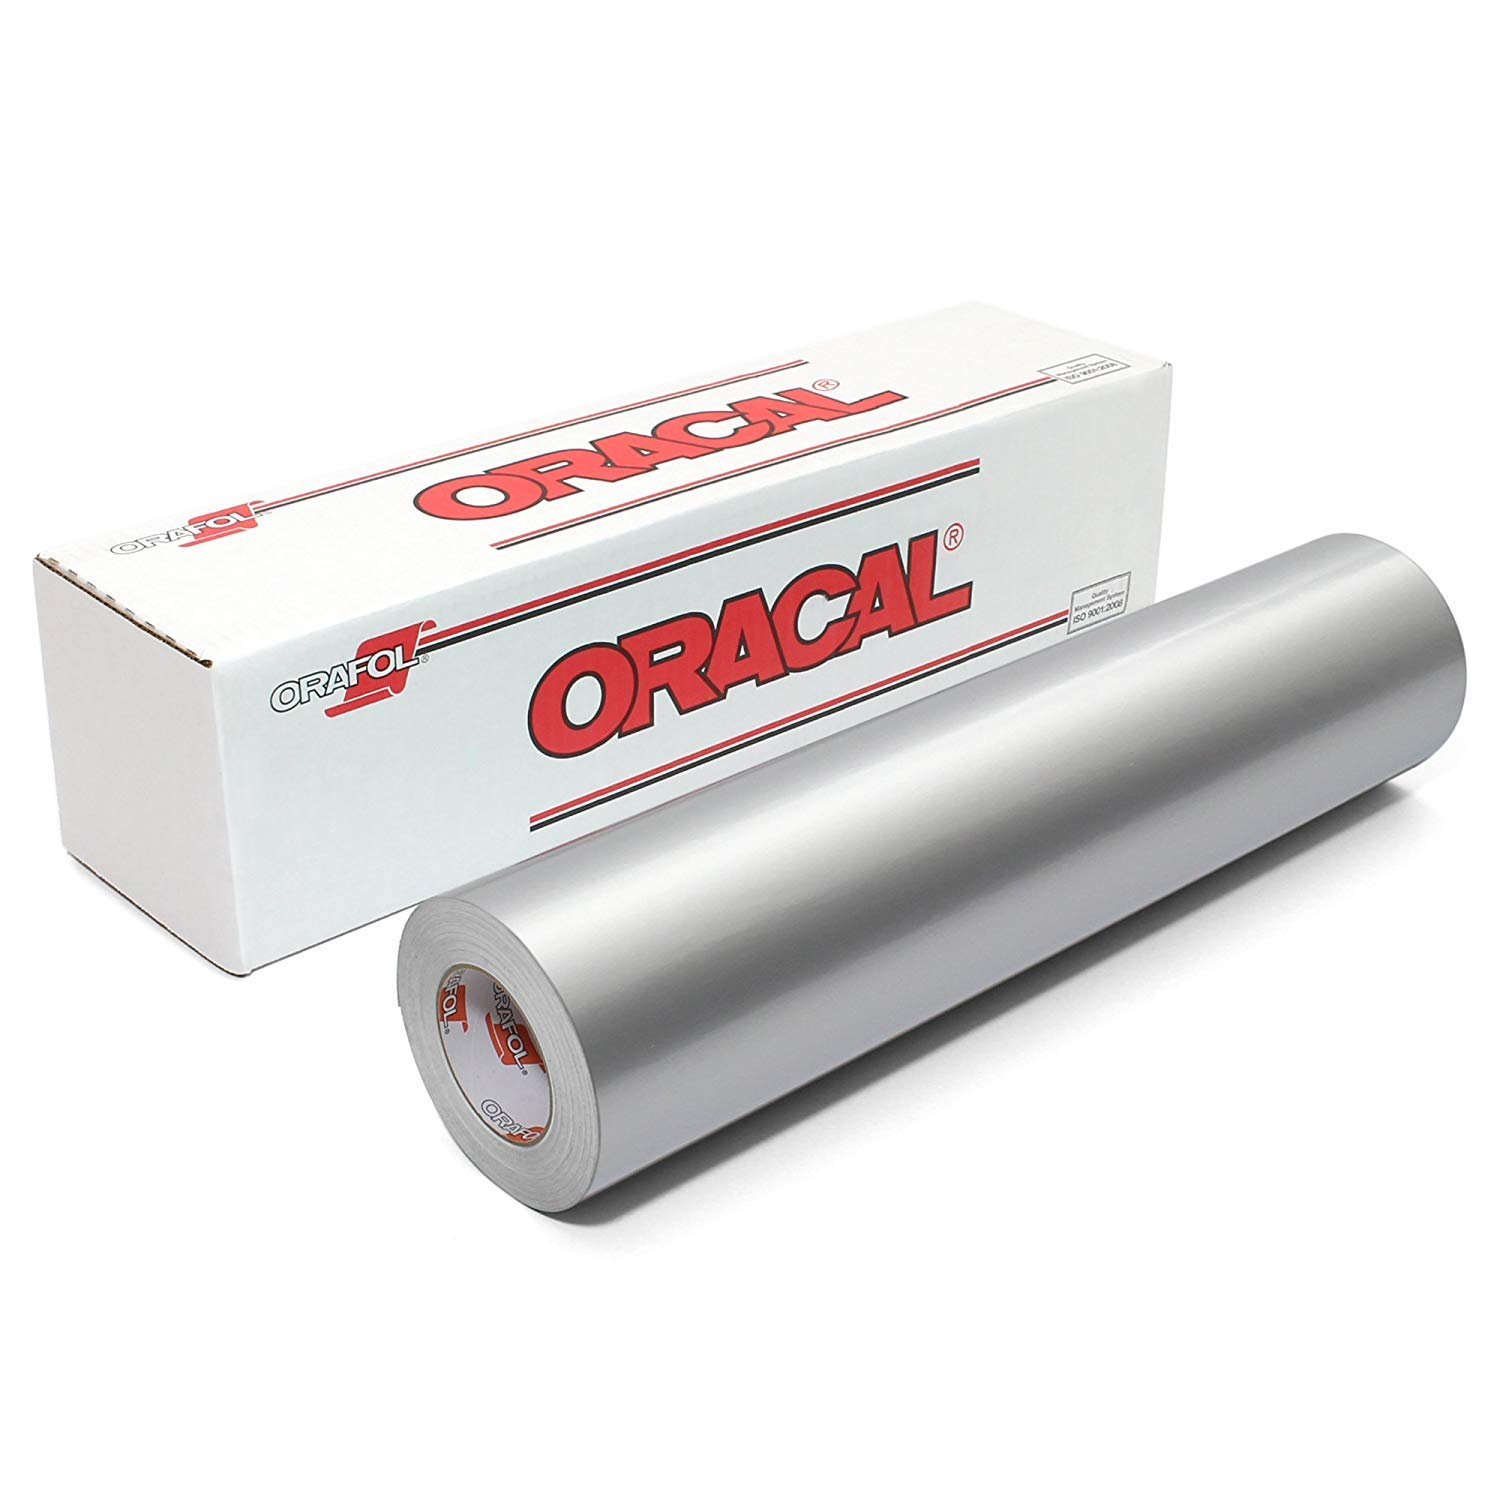 Silver Vinyl 651 by Oracal - Free 3.8 Maple Leaf Decal Roll of Glossy Metallic Silver Grey Outdoor Permanent Adhesive Vinyl 12 x 10 ft